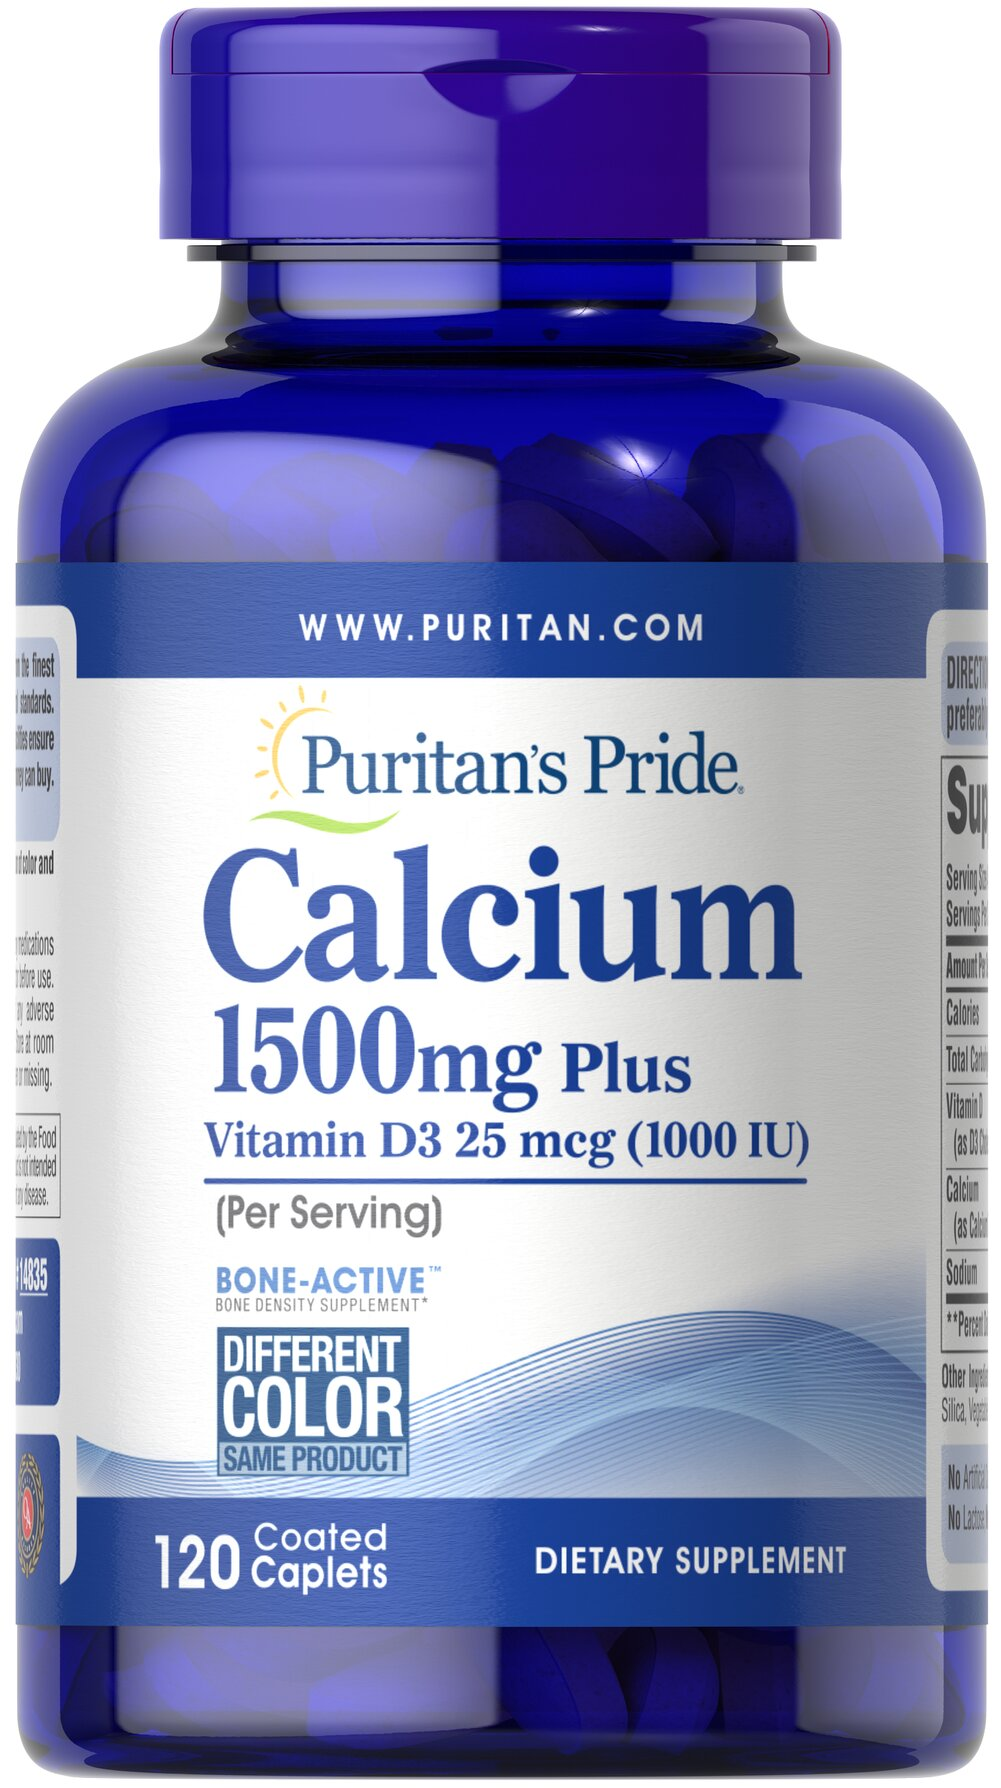 Calcium 1500 mg with Vitamin D 1000 IU <p>1500 mg Calcium and 1000 IU Vitamin D per serving</p><p>Contributes to bone strength and well-being**</p><p>A high-potency source of Calcium and Vitamin D</p><p>Since your body can't produce Calcium on its own, a balanced diet, regular exercise, healthy lifestyle choices and adequate intake of Calcium and Vitamin D can play a role in maintaining strong, healthy bones for years to come.**</p> 120 Coated Capl